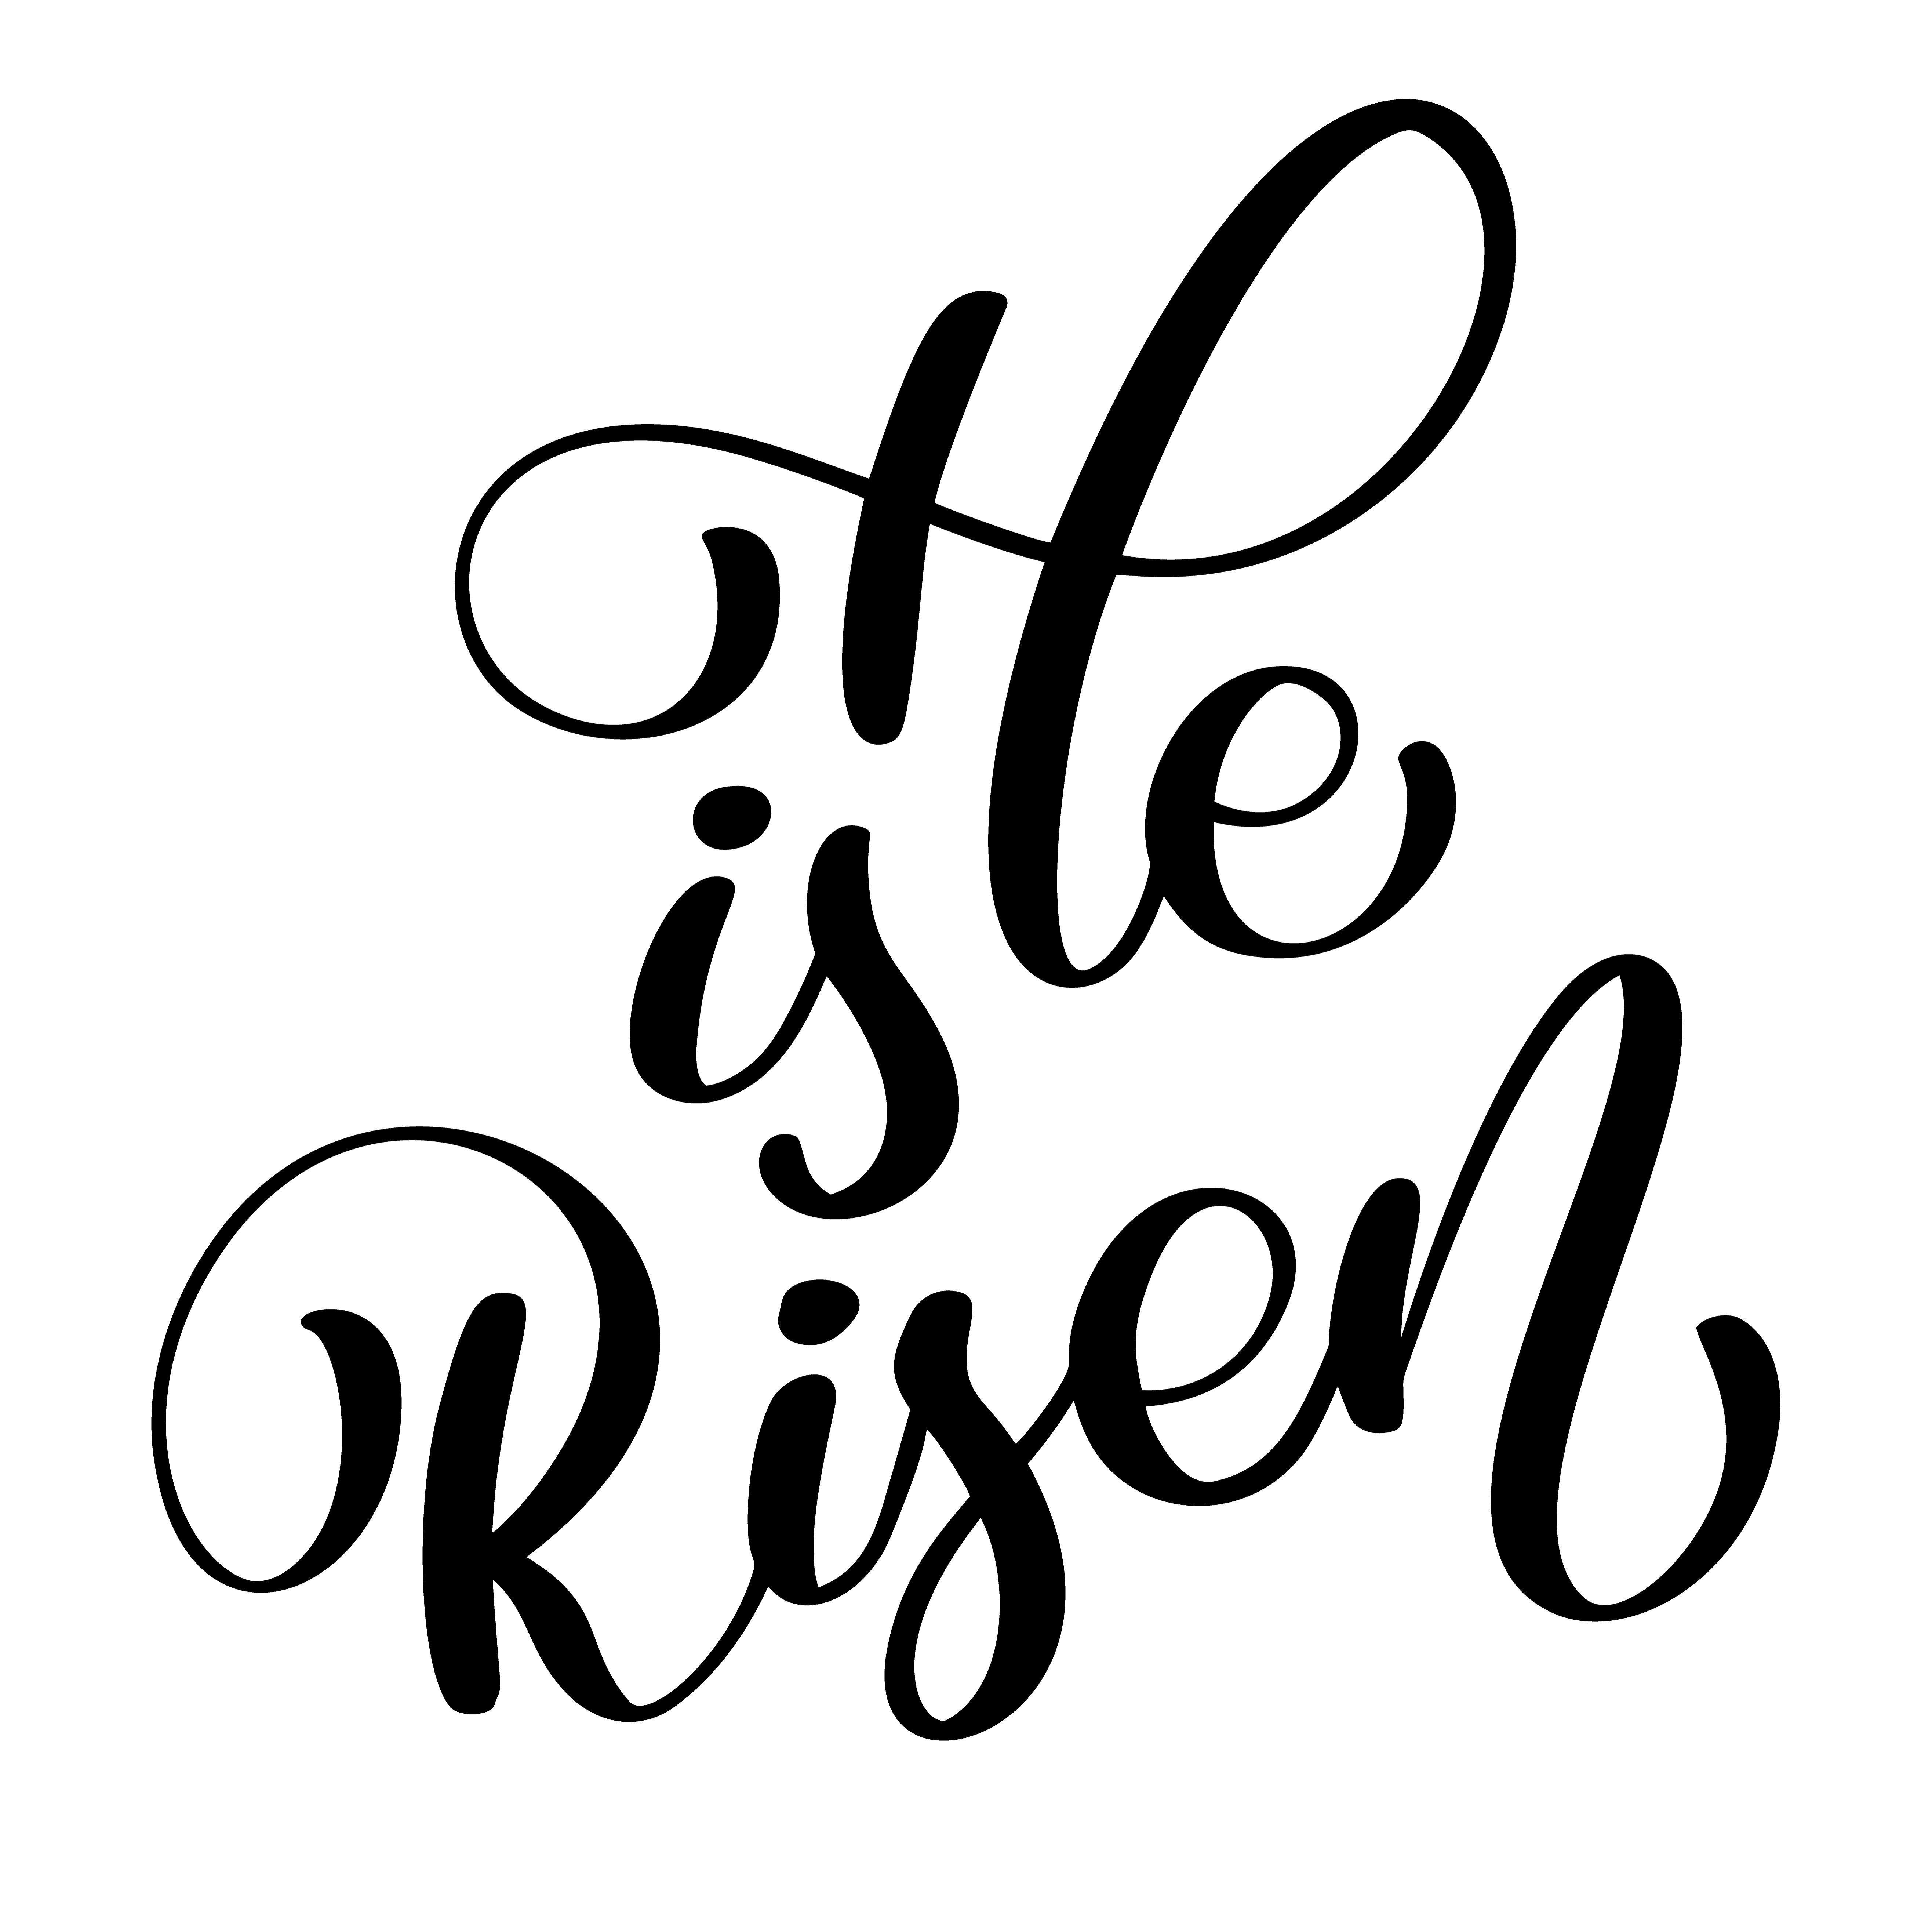 He Is Risen Text On White Background Calligraphy